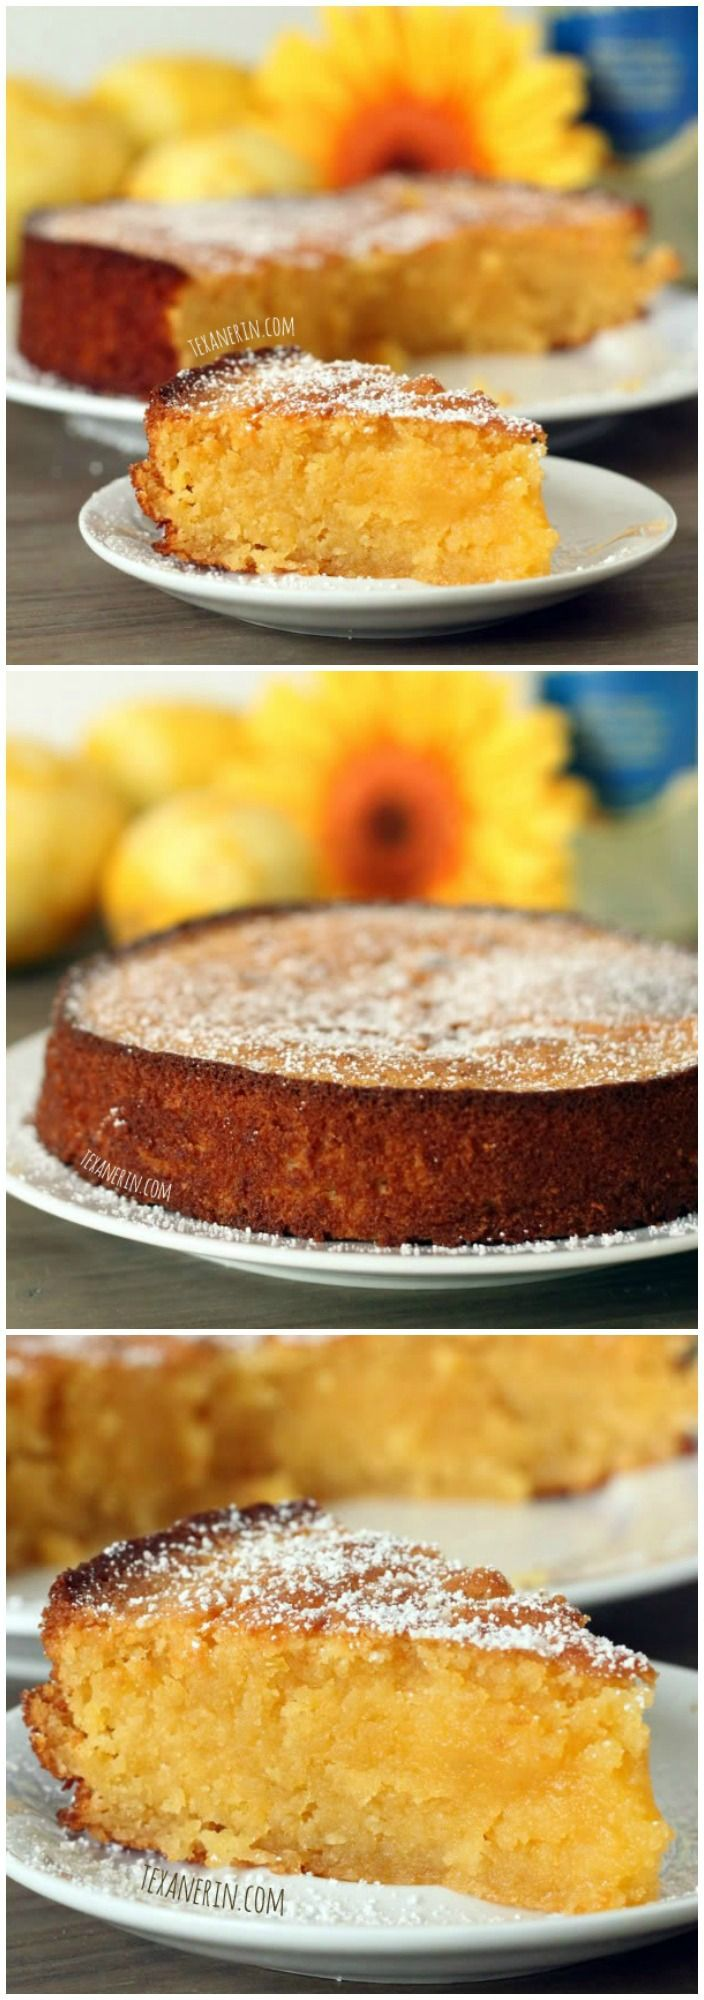 This grain-free Italian lemon cake (also known as torta caprese bianca) is made…